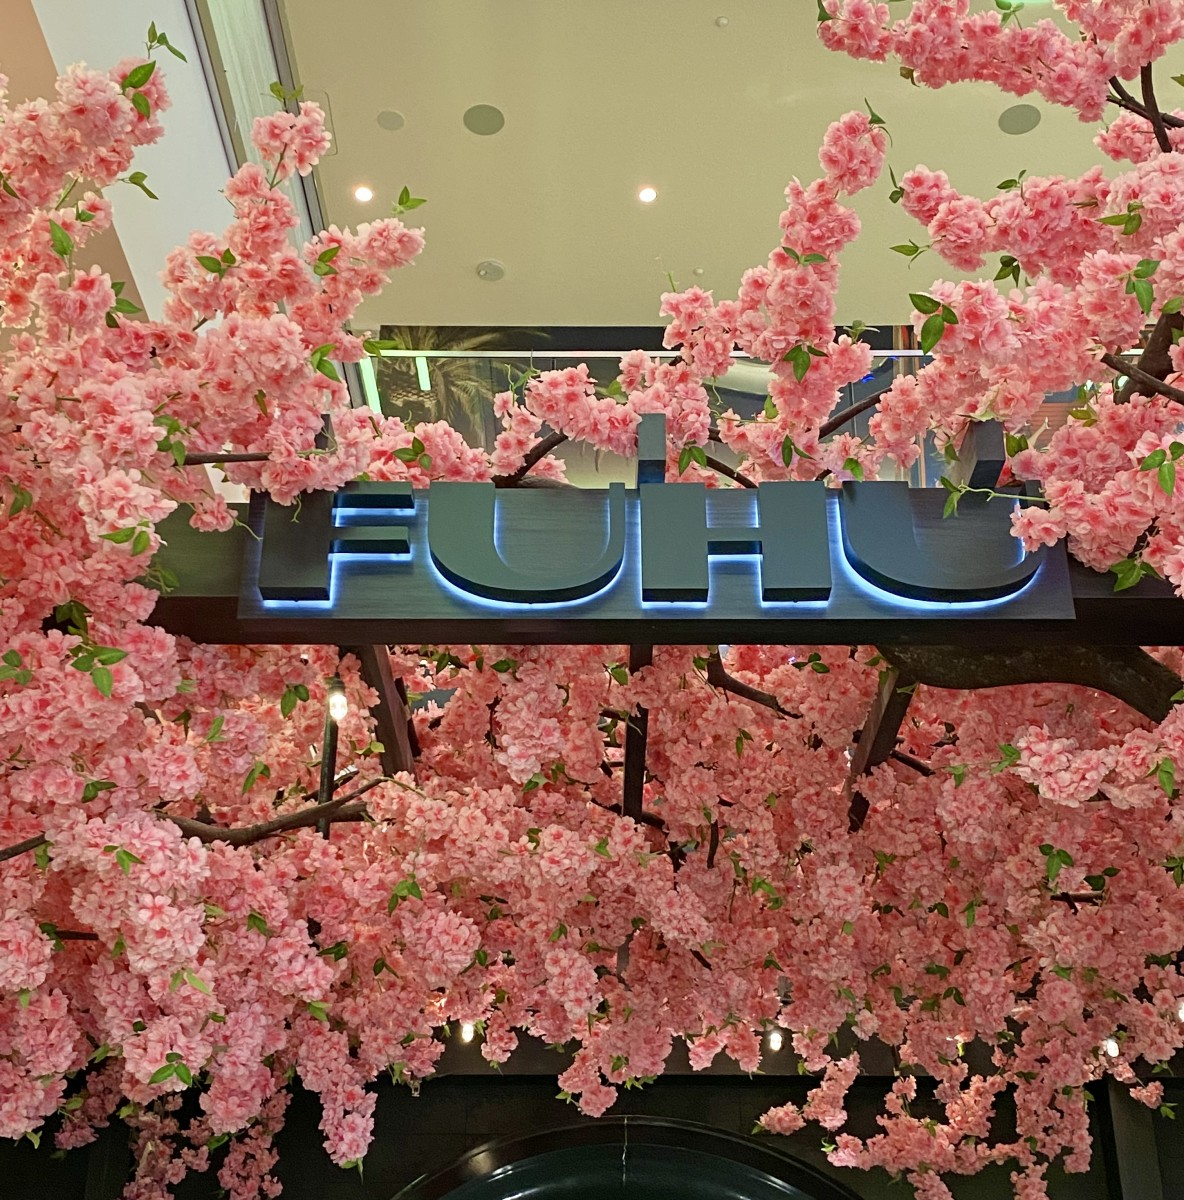 Zouk Group's FUHU is an upscale, stylish venue serving up contemporary Asian cuisine with a Western flare.